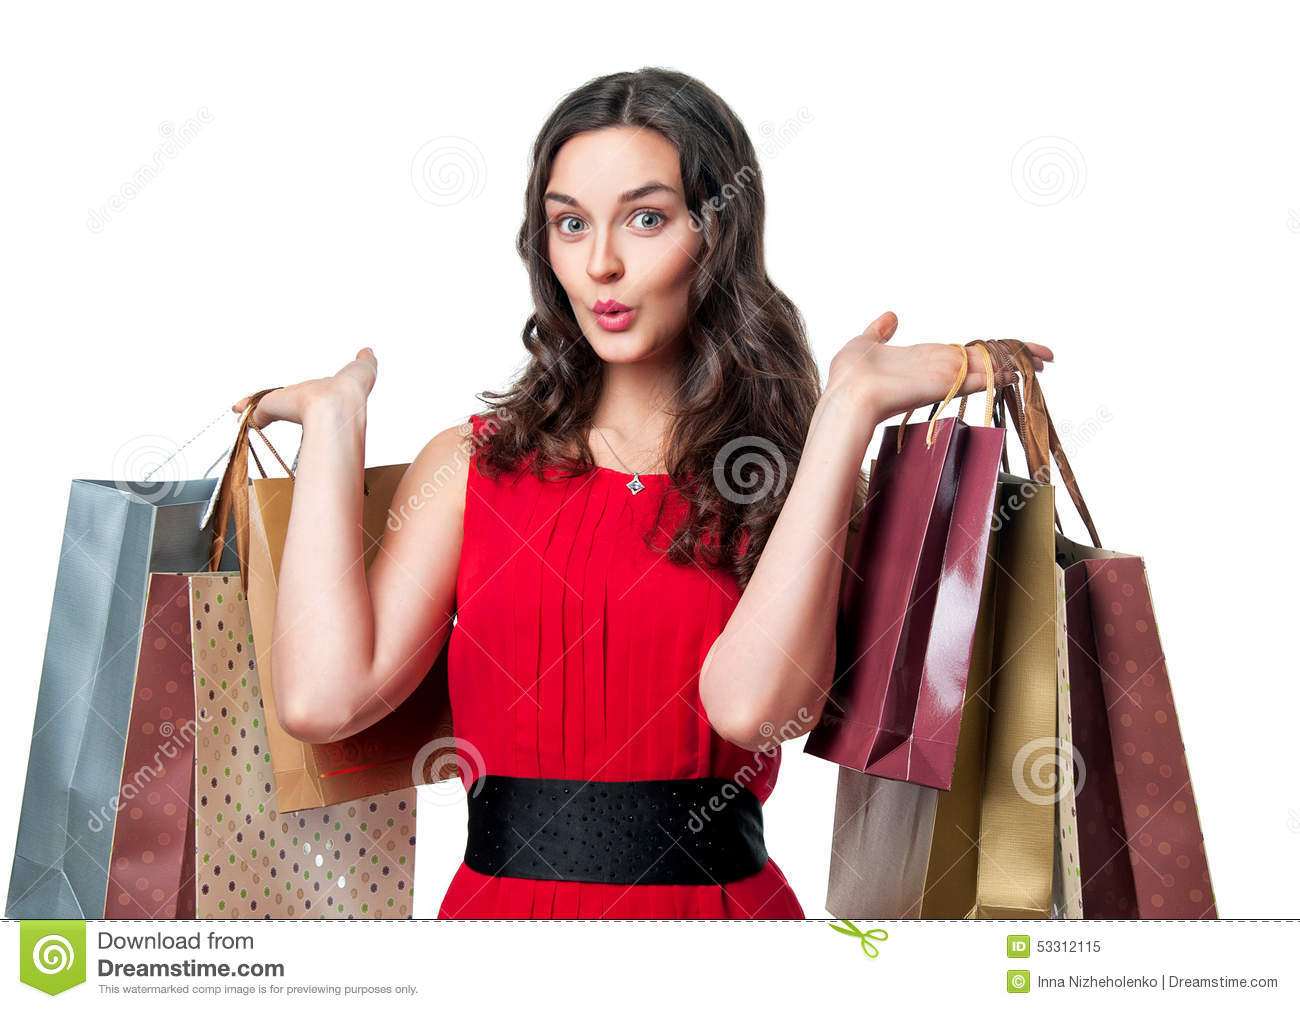 Gifts christmas smiling woman in red dress with shopping bags